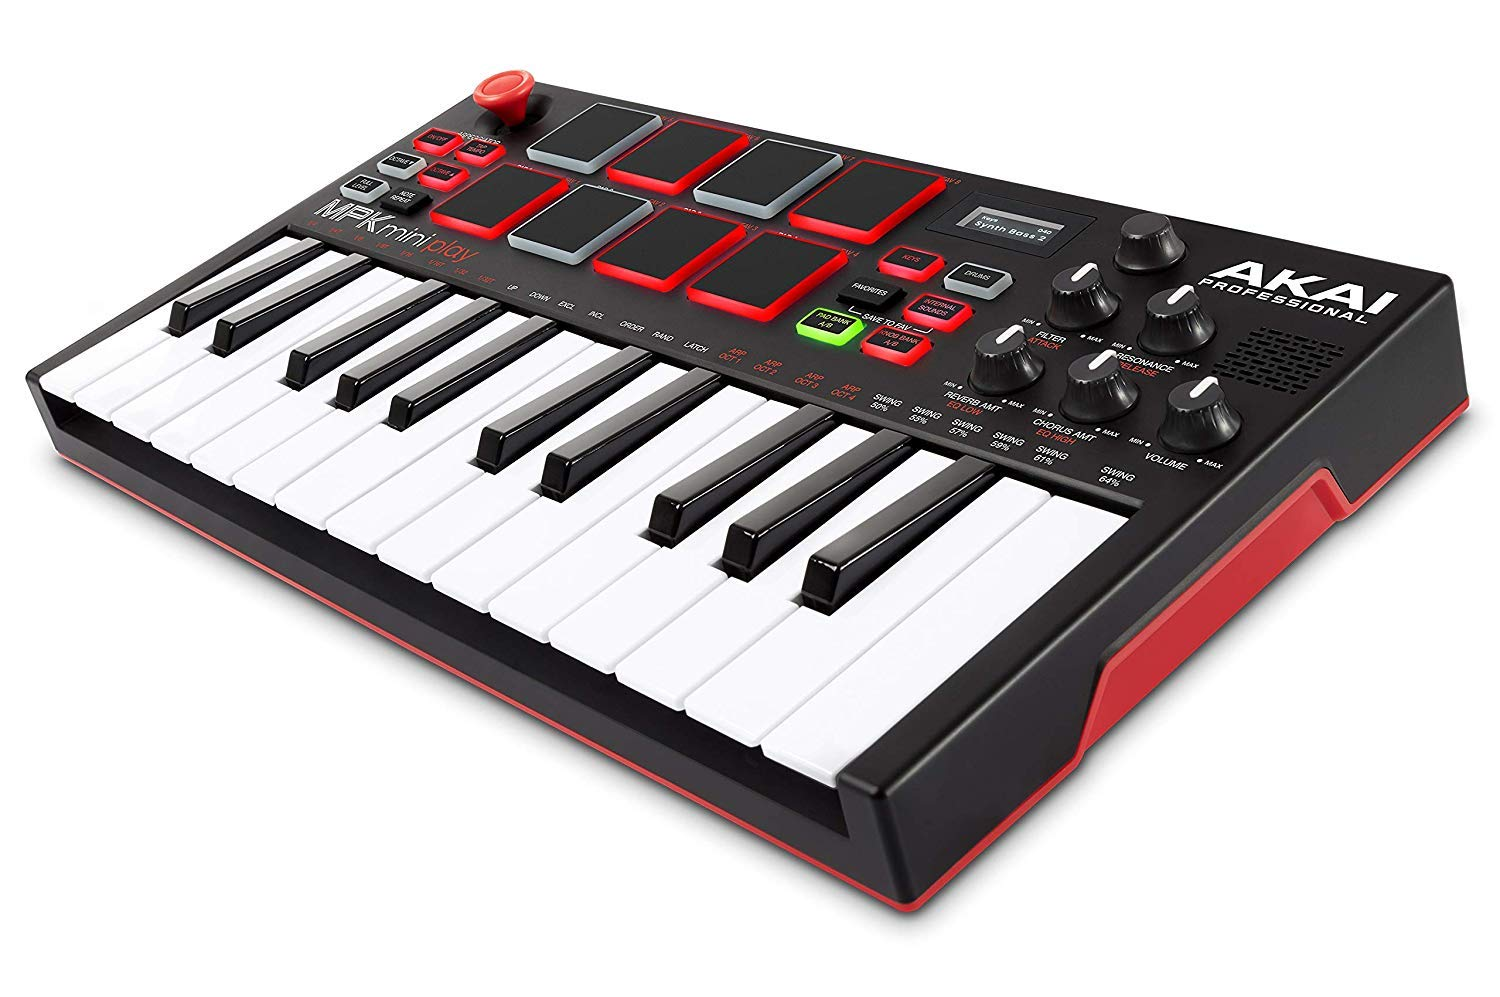 Akai Professional MPK Mini Play | Standalone Mini Keyboard & USB Controller With Built-In Speaker, MPC-Style Pads, On-board Effects, 128 Instrument- & 10 Drum-Sounds, and Software Suite Included by Akai Professional